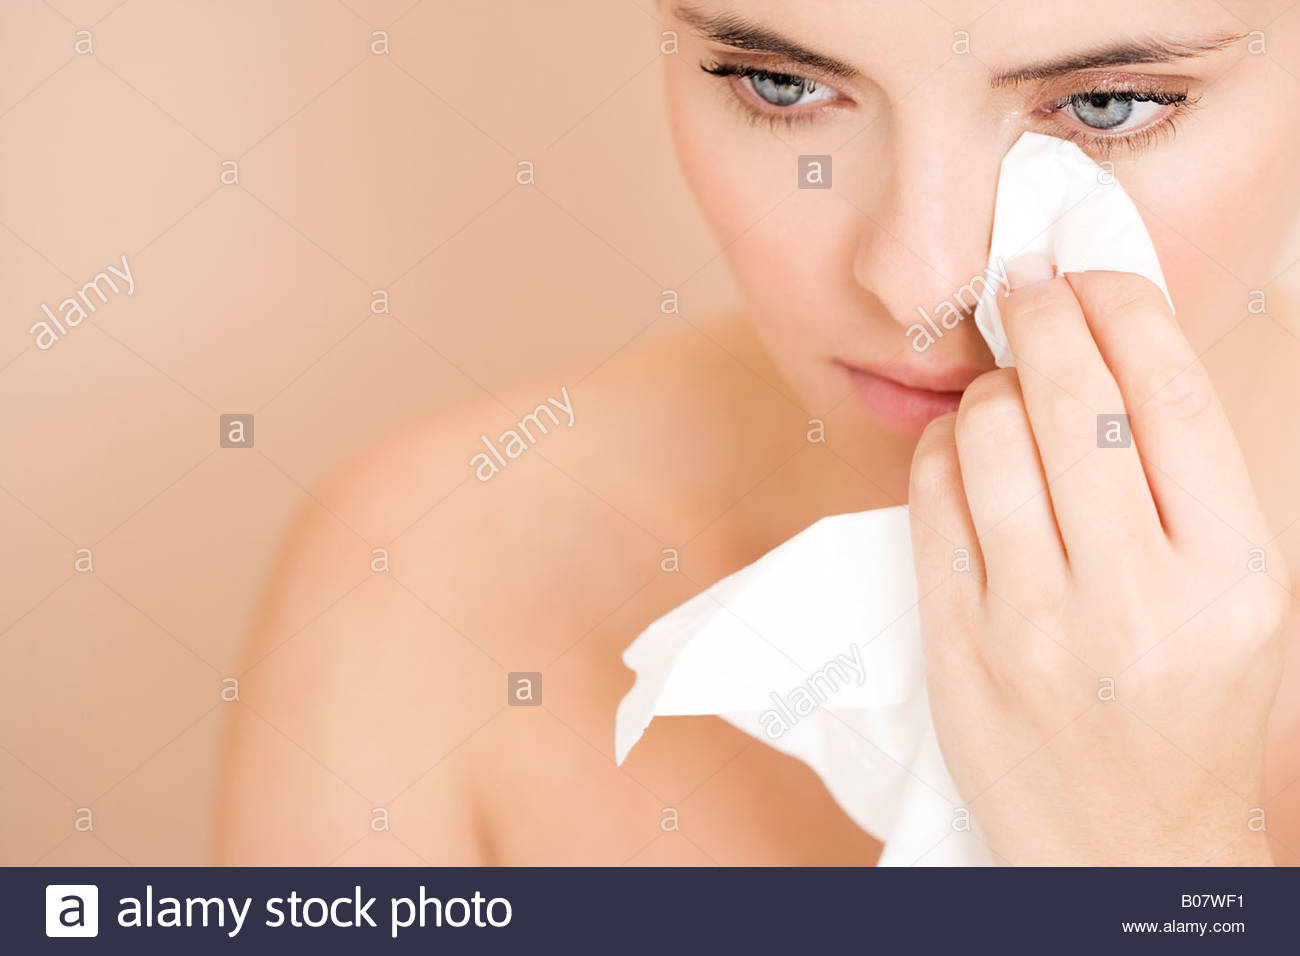 Woman crying, wiping tears away with a tissue - Stock Image